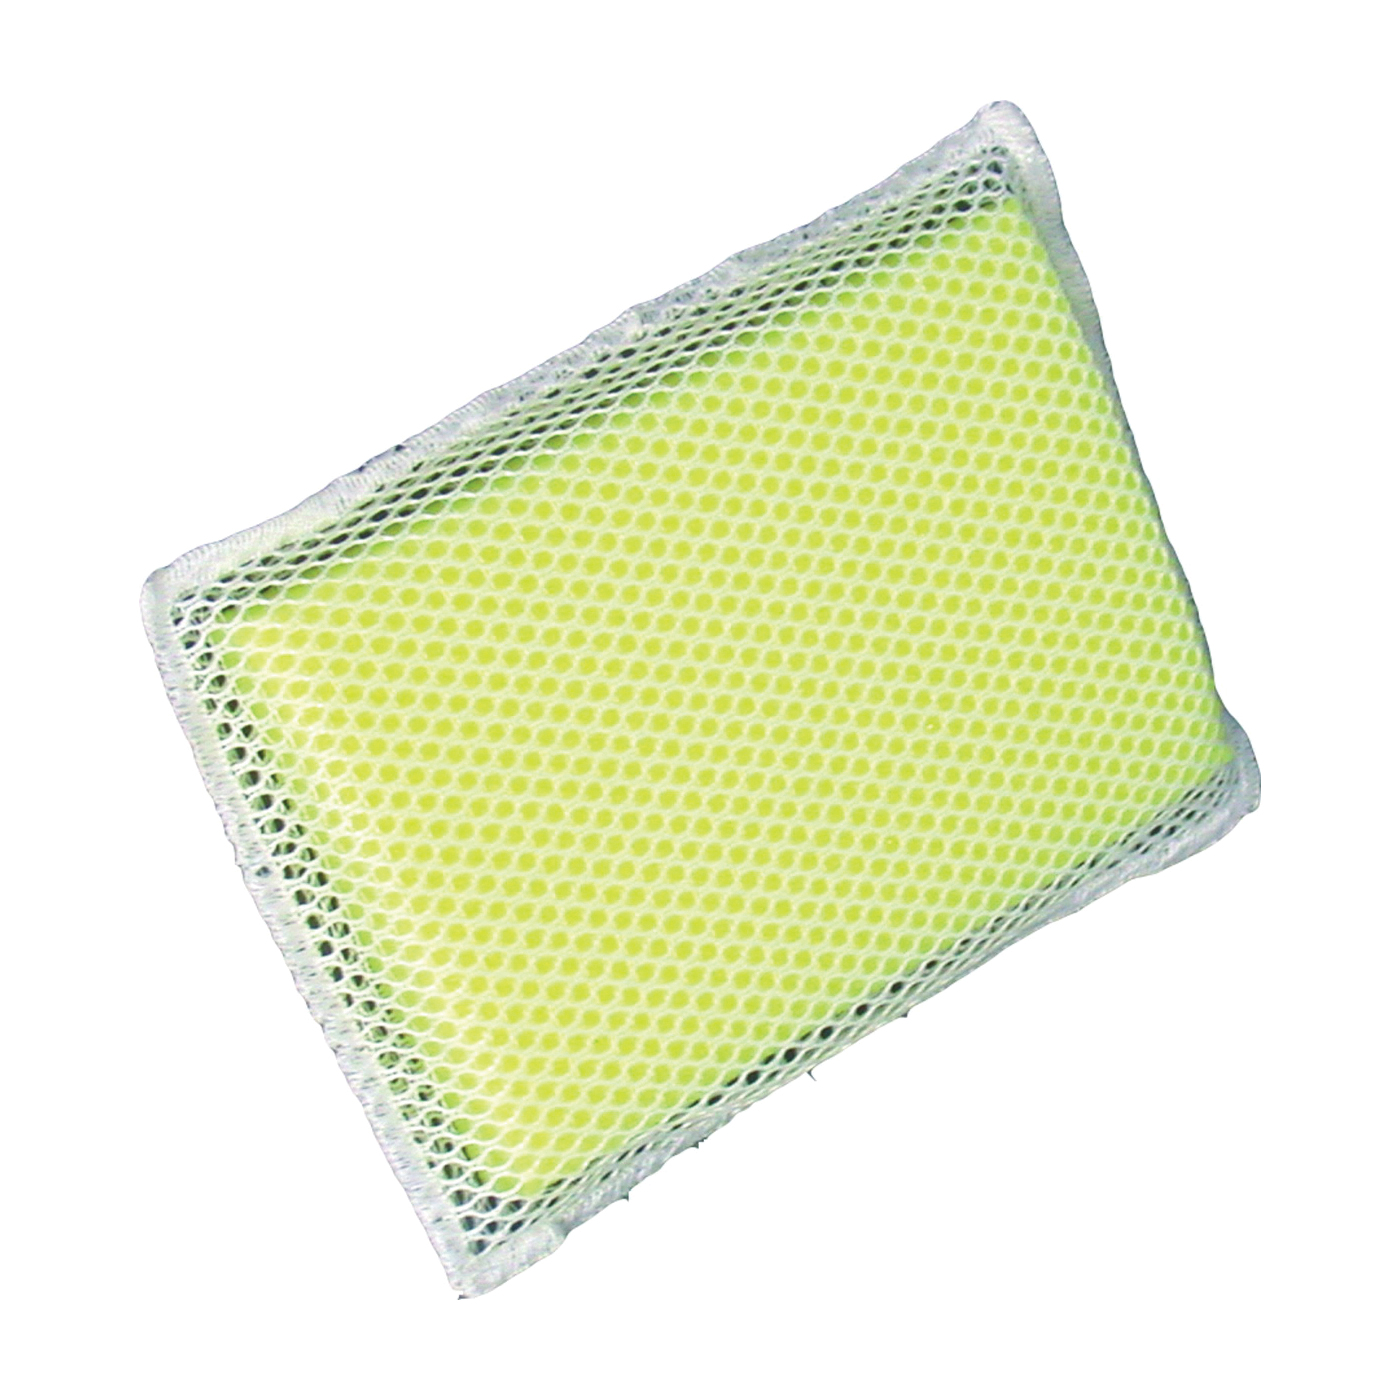 Picture of BIRDWELL 354-24 Scouring Sponge, 6-1/4 in L, 4 in W, 3/4 in Thick